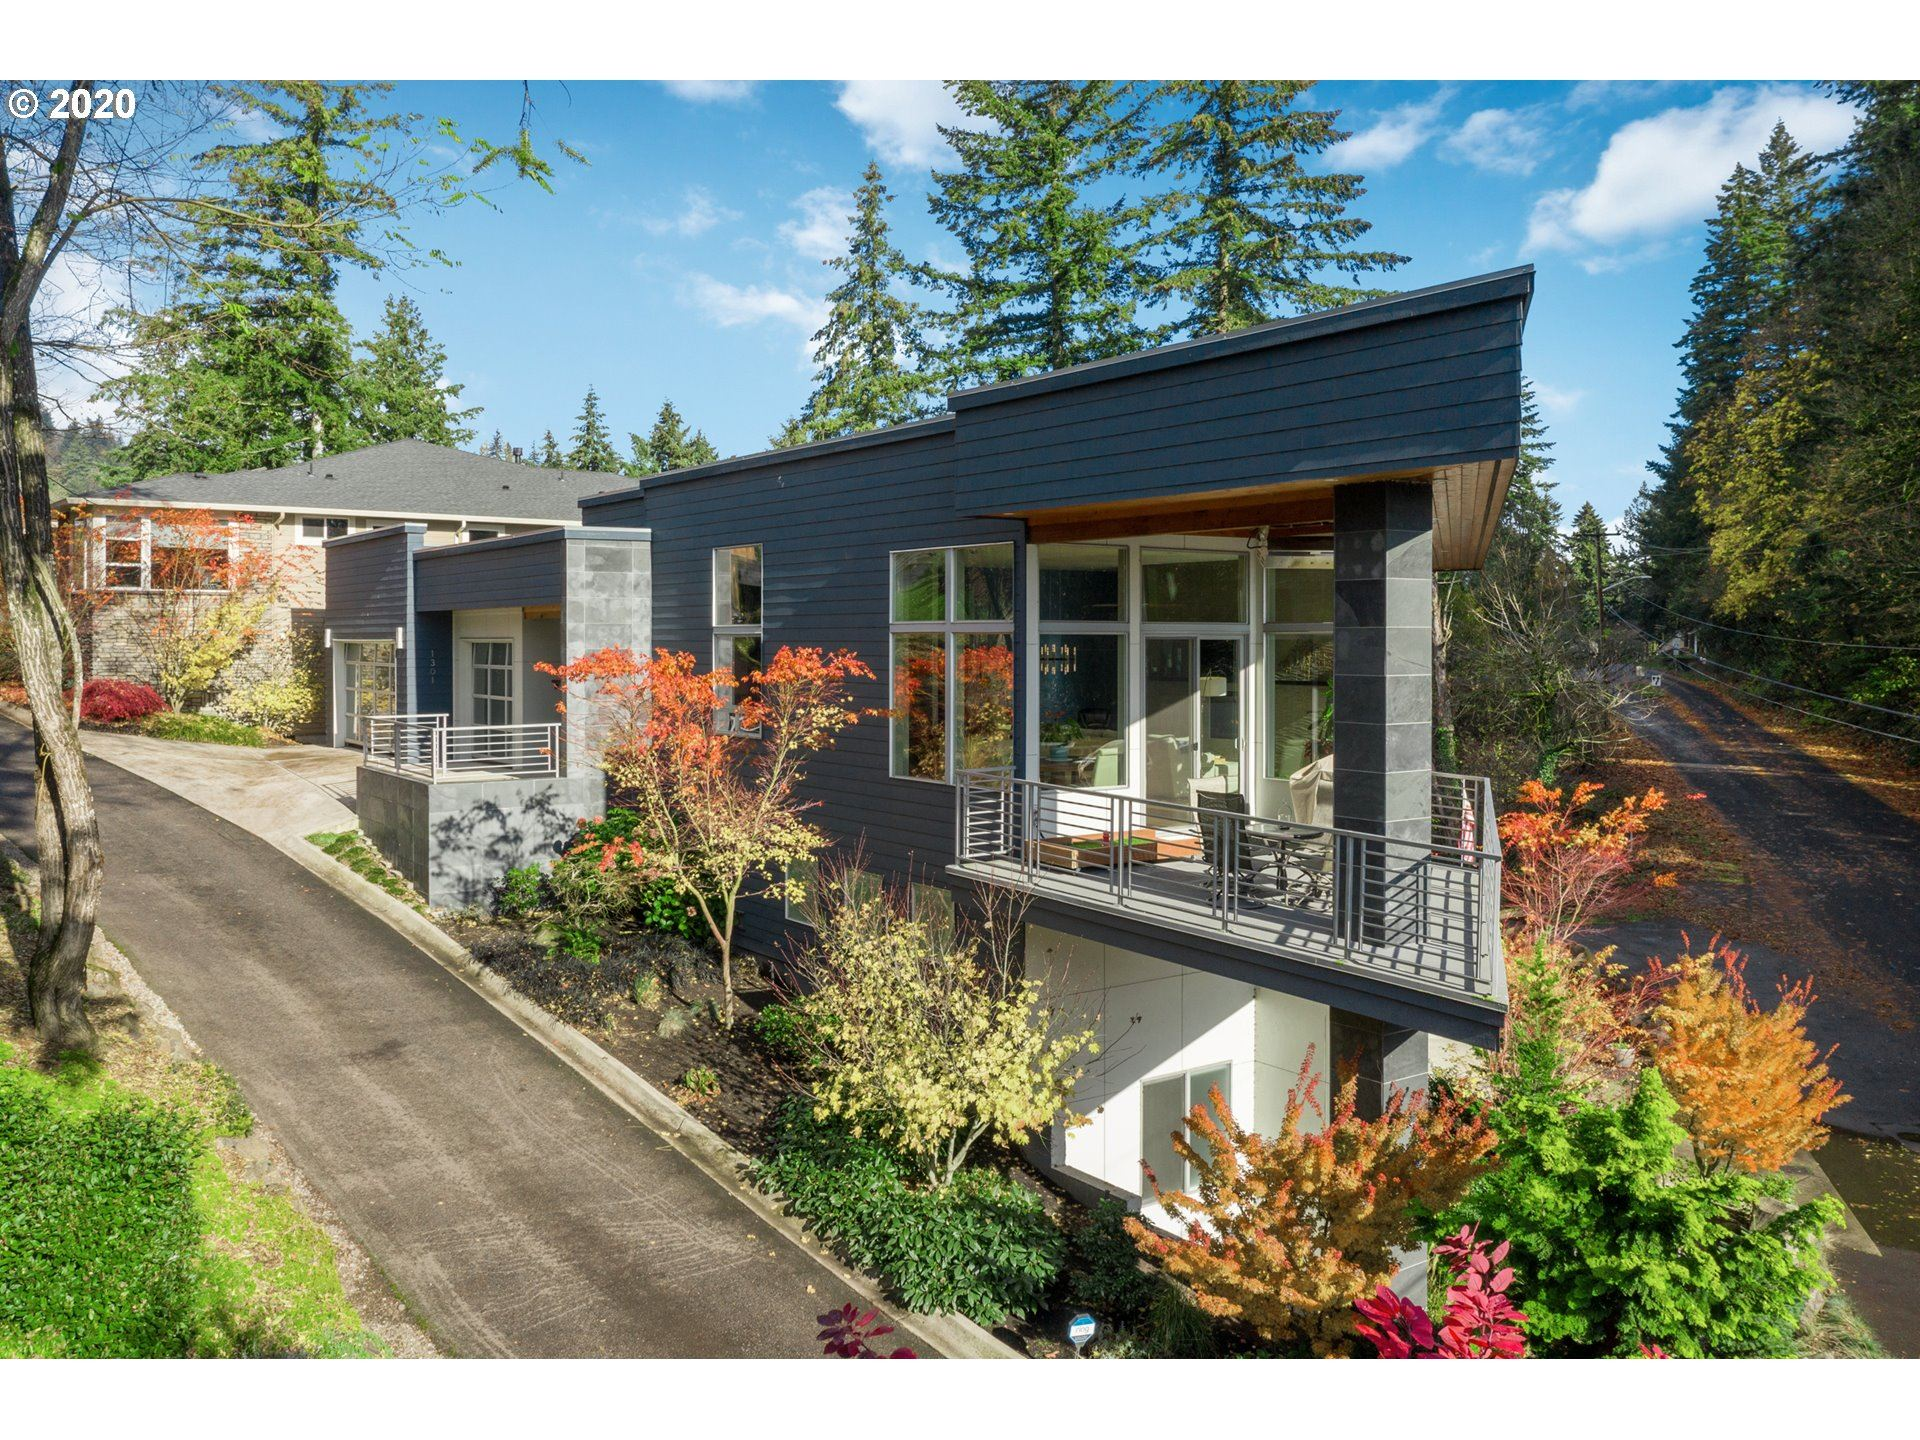 Photo for 1301 NW 5TH AVE, Camas, WA 98607 (MLS # 20434988)